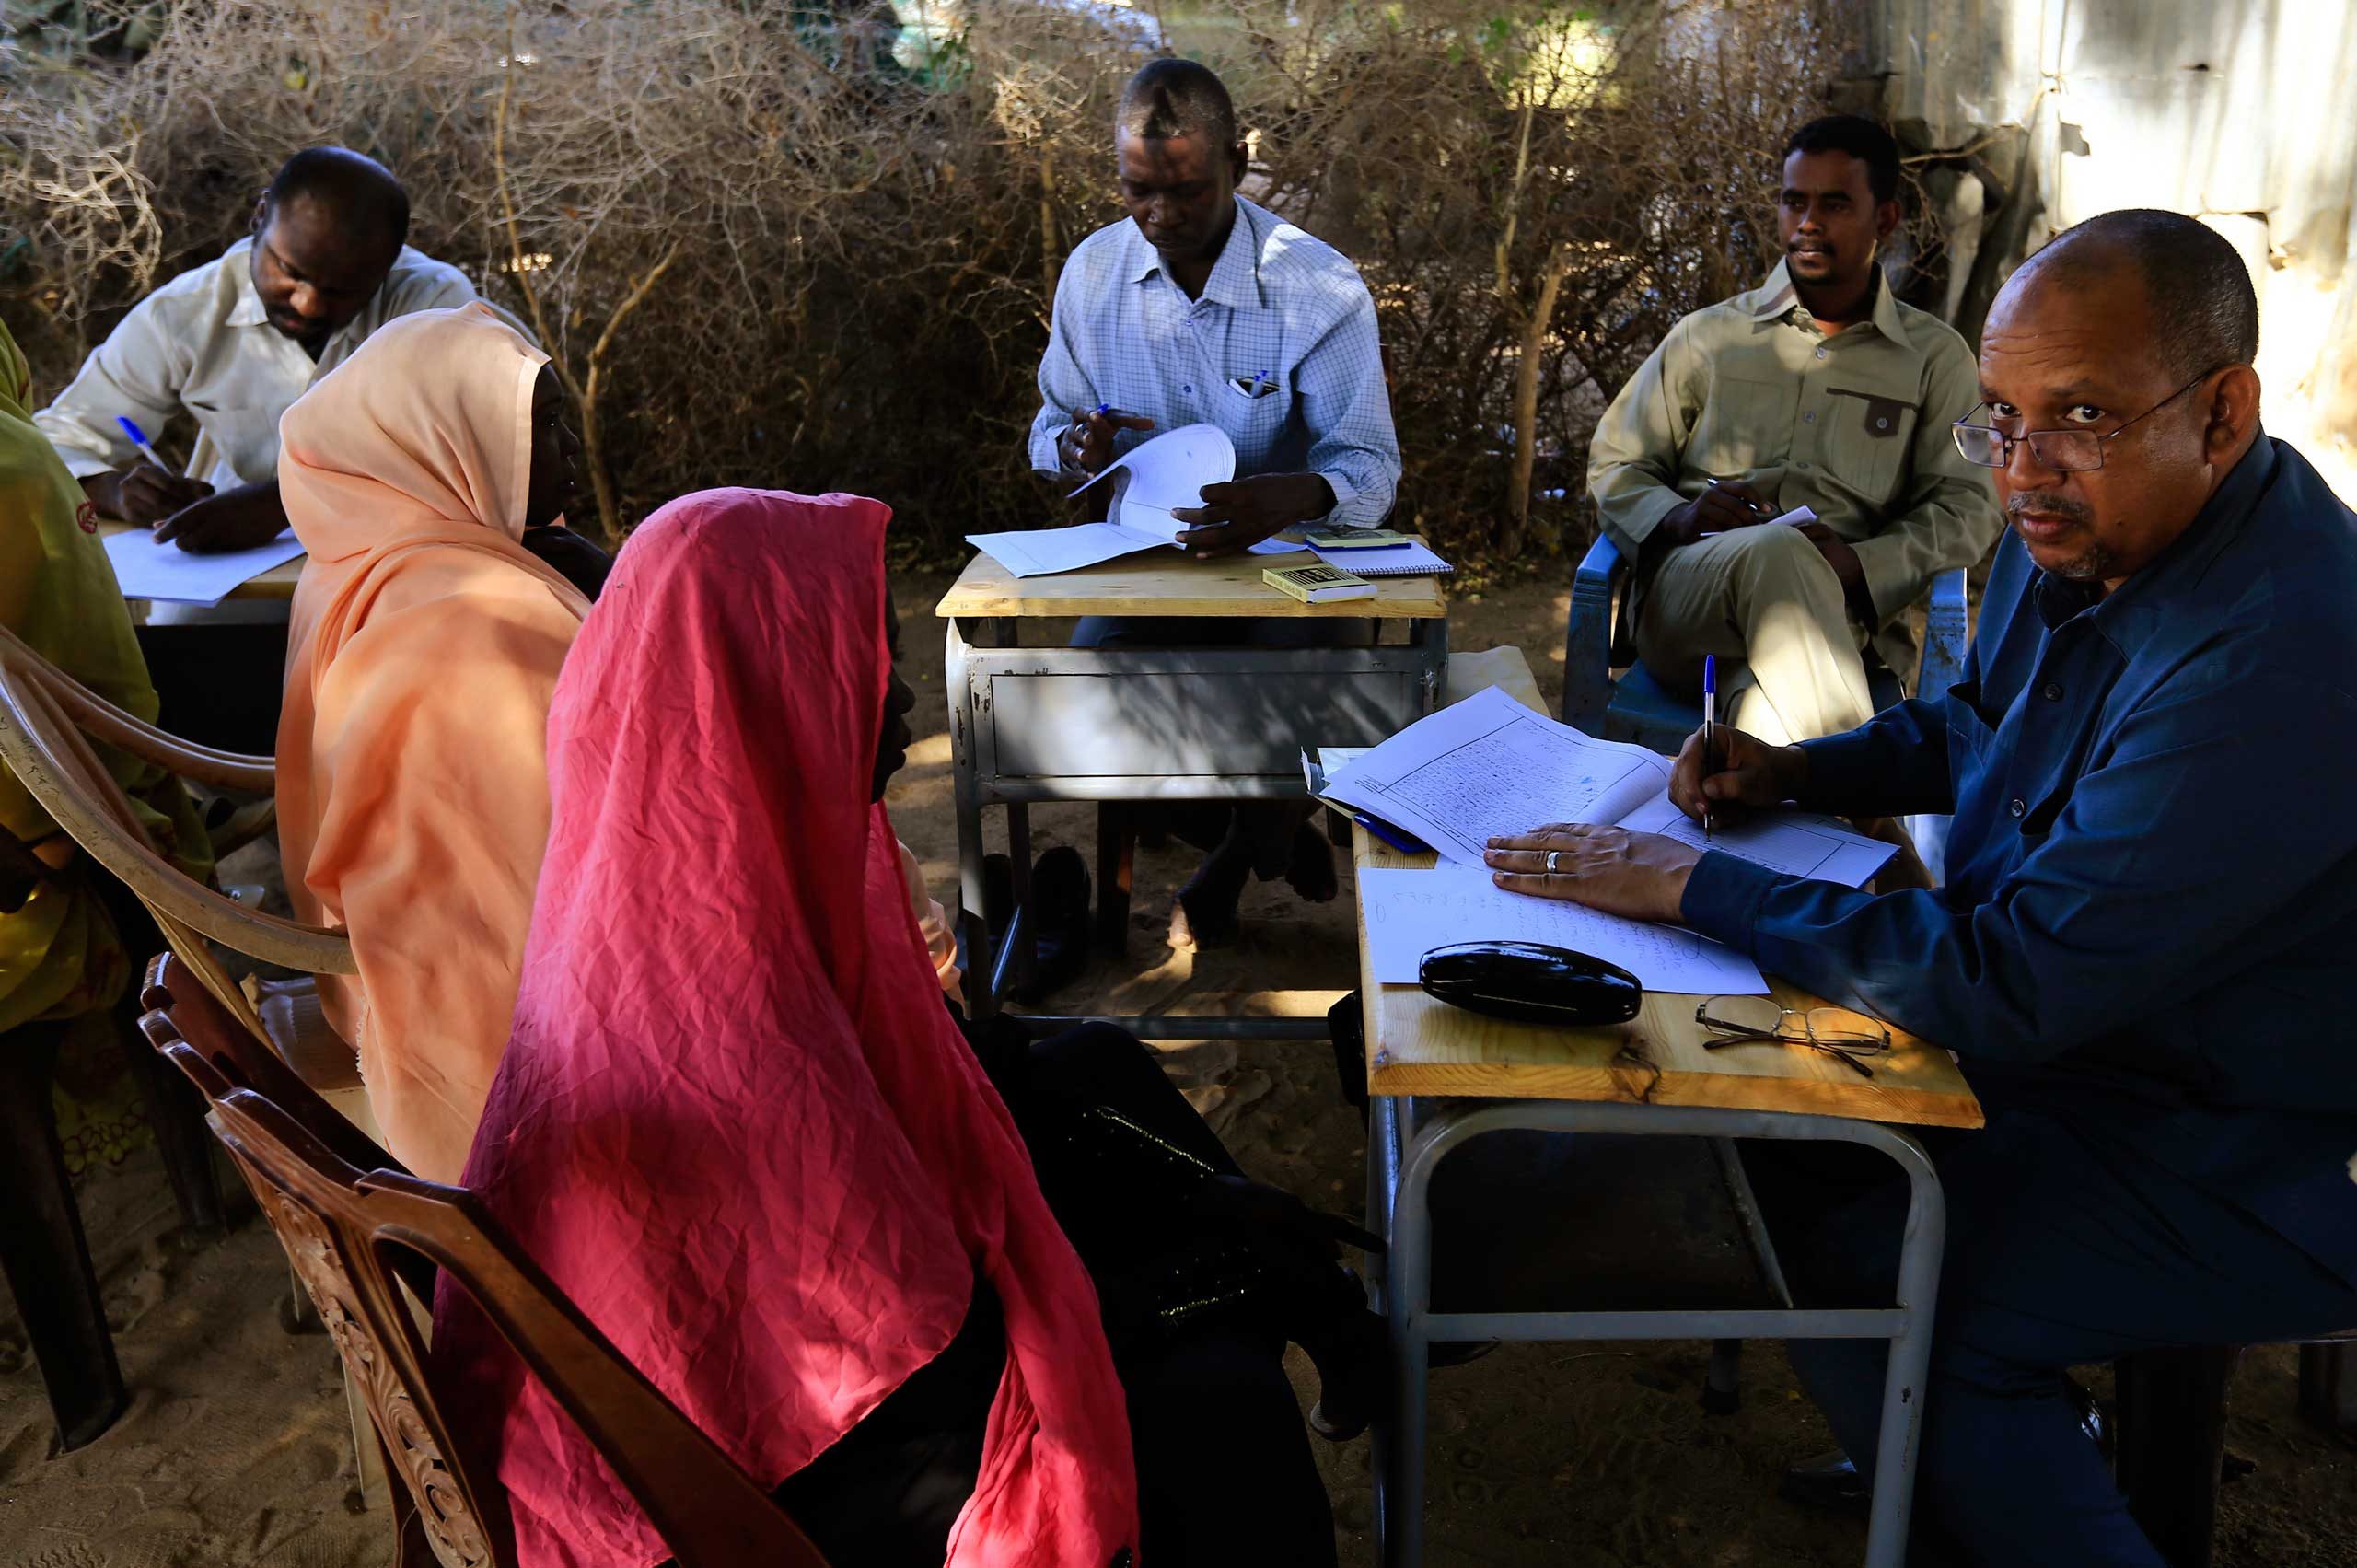 Special Prosecutor for Crimes in Darfur Yasir Ahmed Mohamed and his team talk to women during an investigation into allegations of mass rape in the village of Tabit, in North Darfur, Nov. 20, 2014.